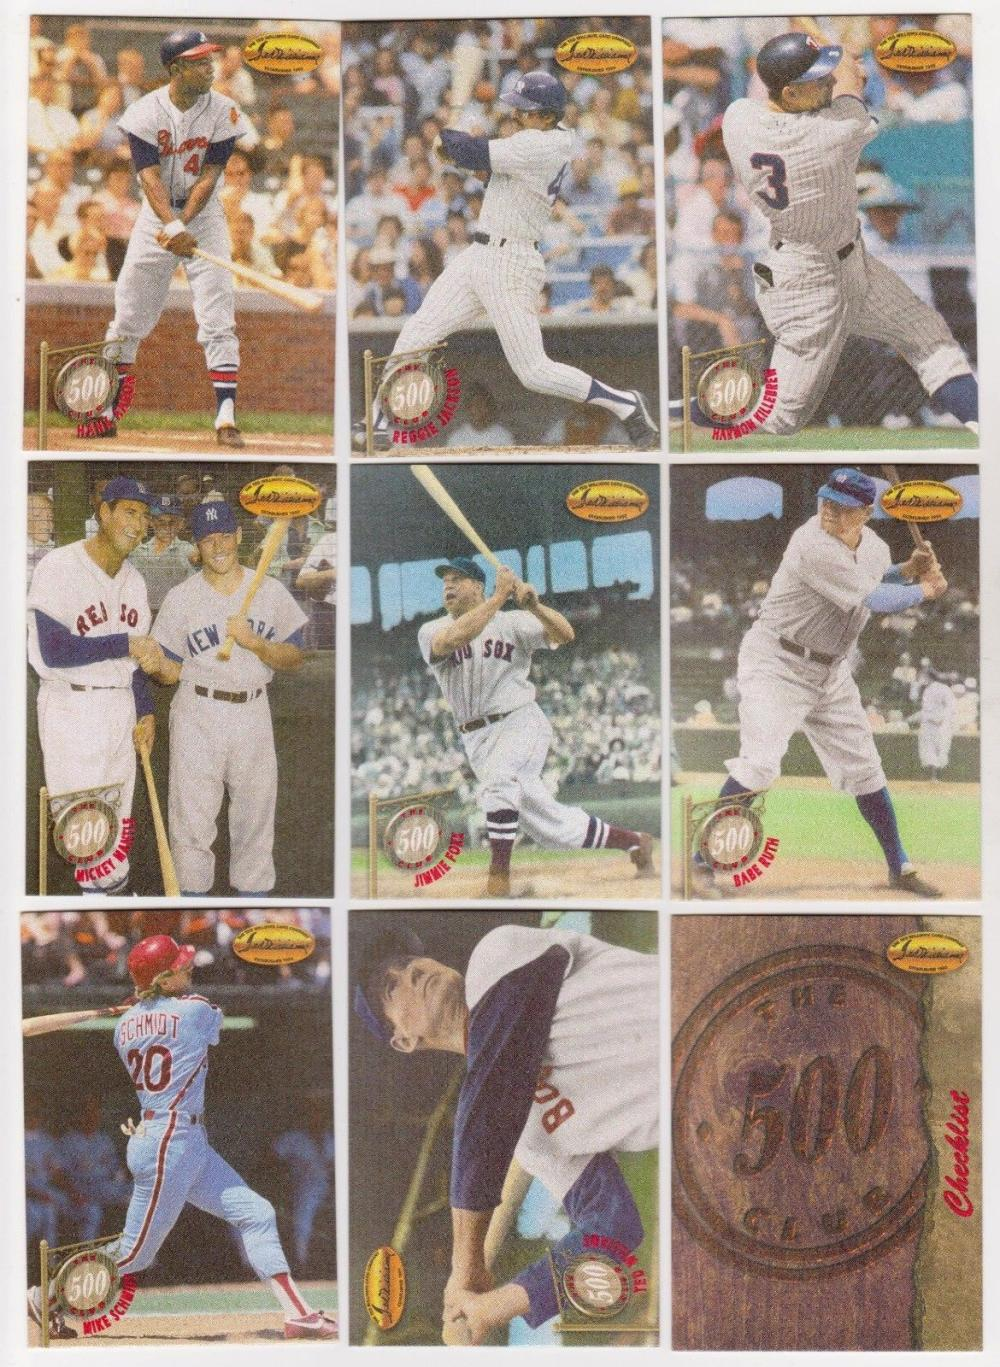 1994 Ted Williams Company 500 Home Run Club Red Version 9 Card Set